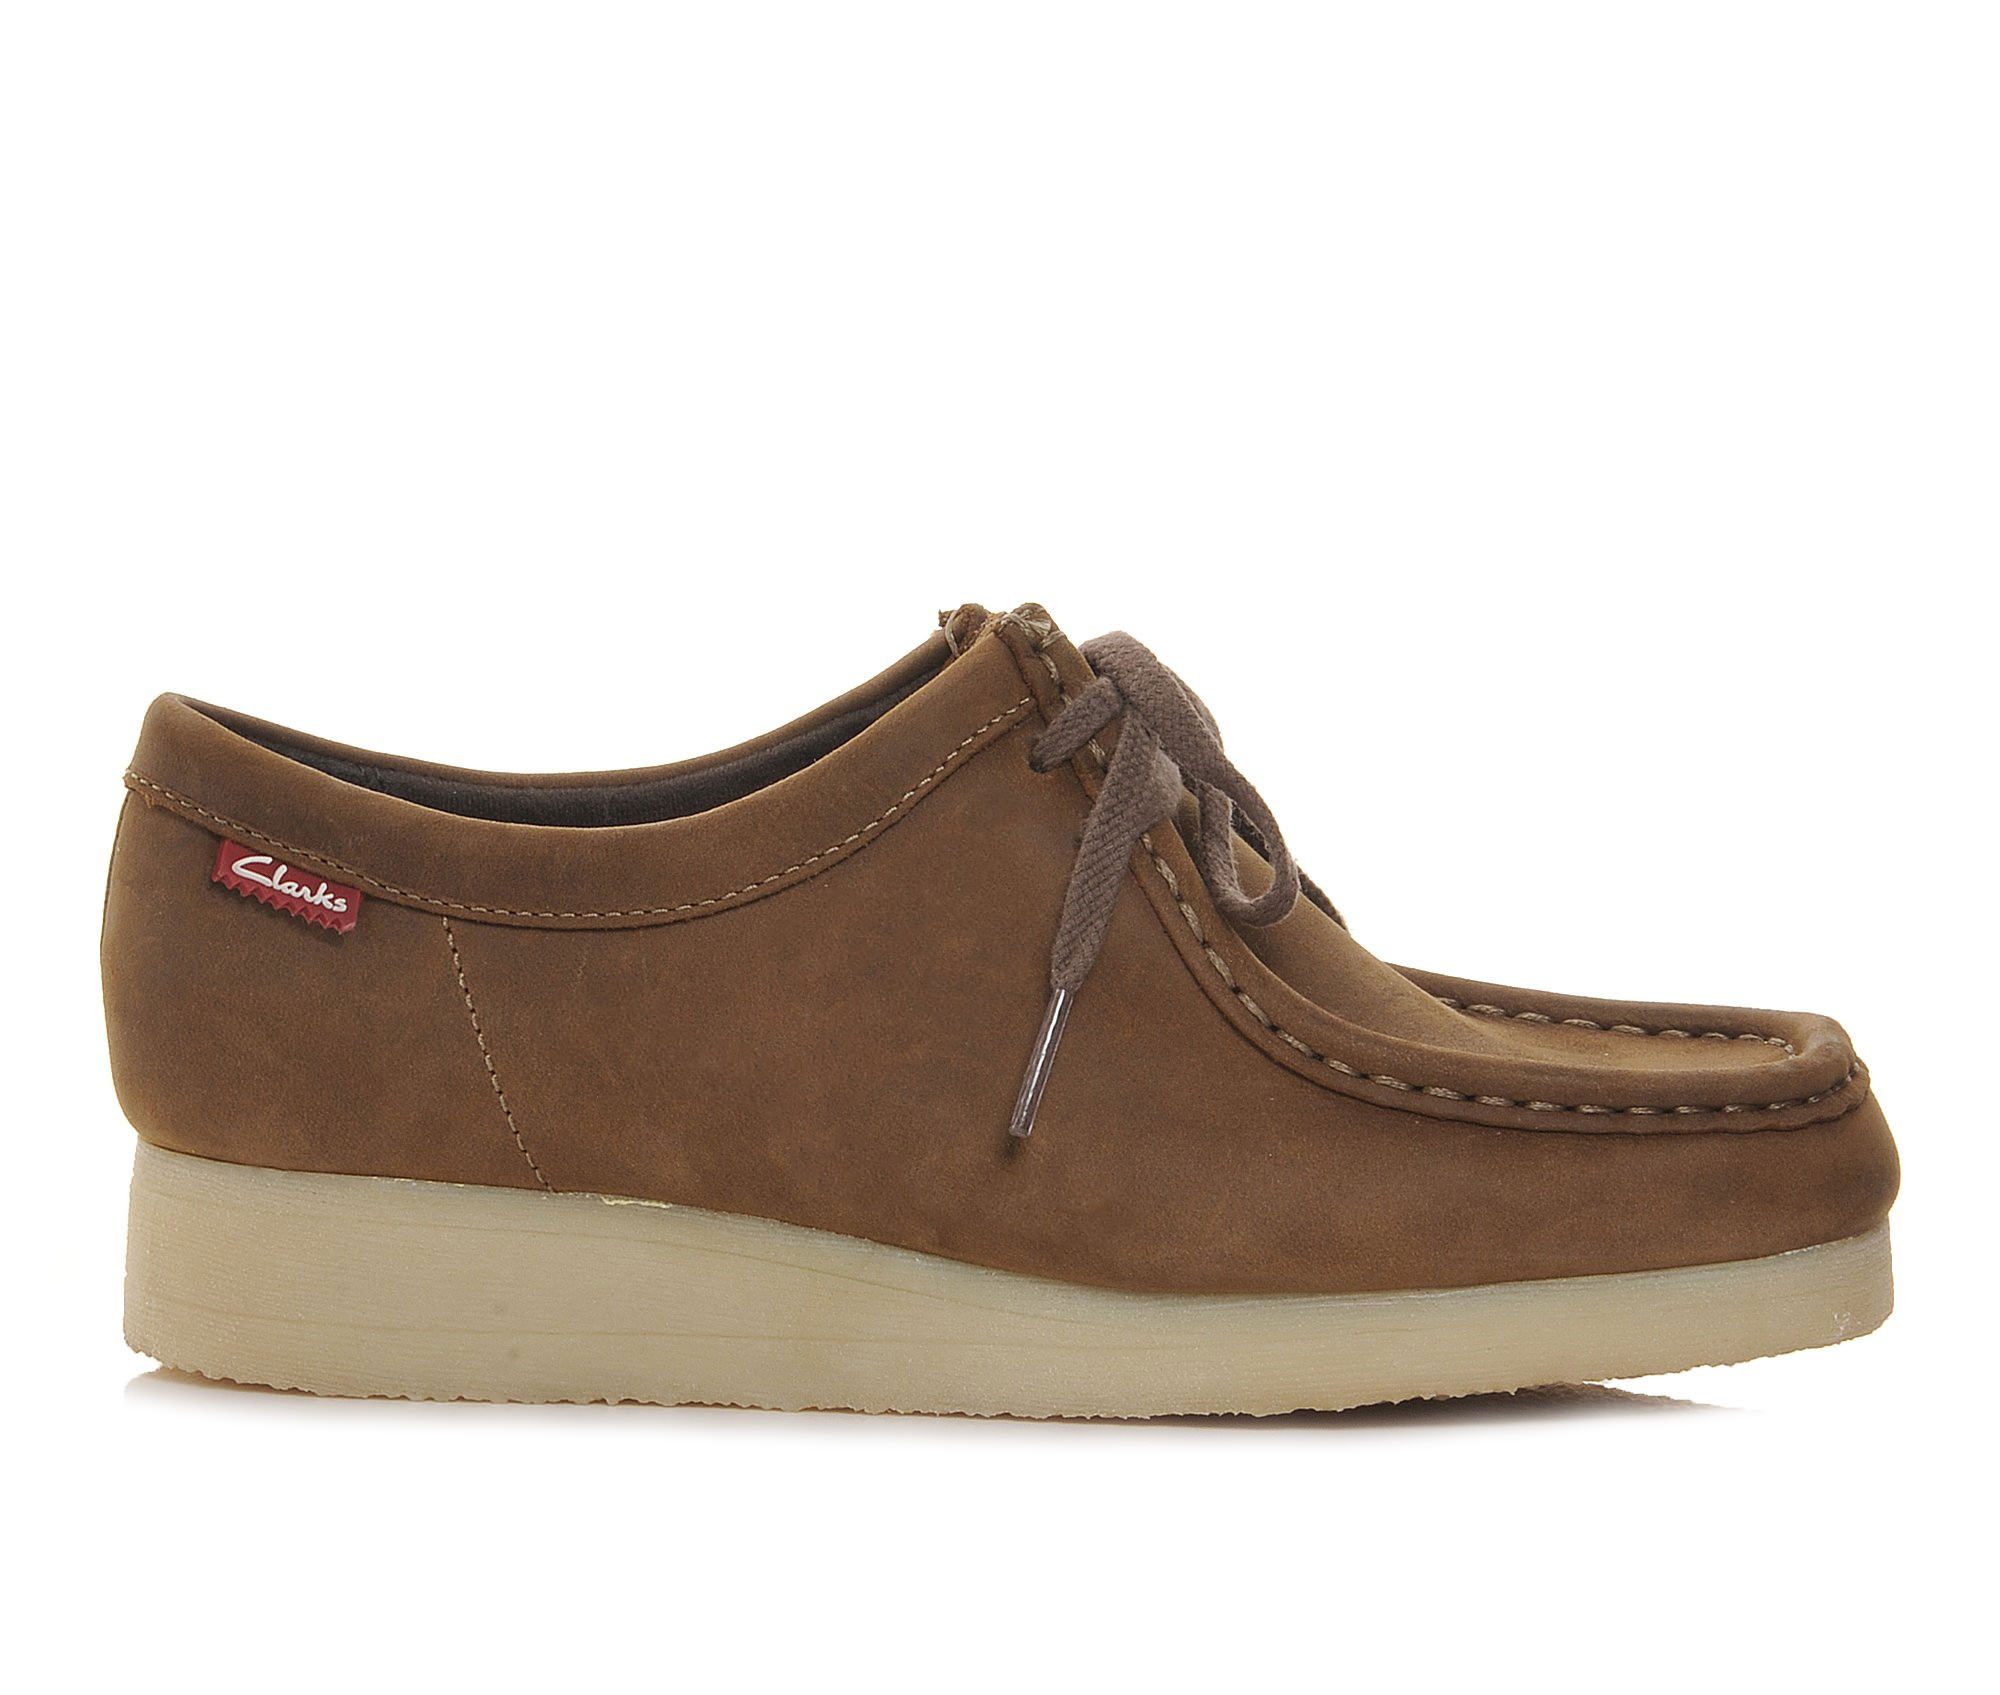 Clarks Padmore Women's Shoe (Brown Leather)